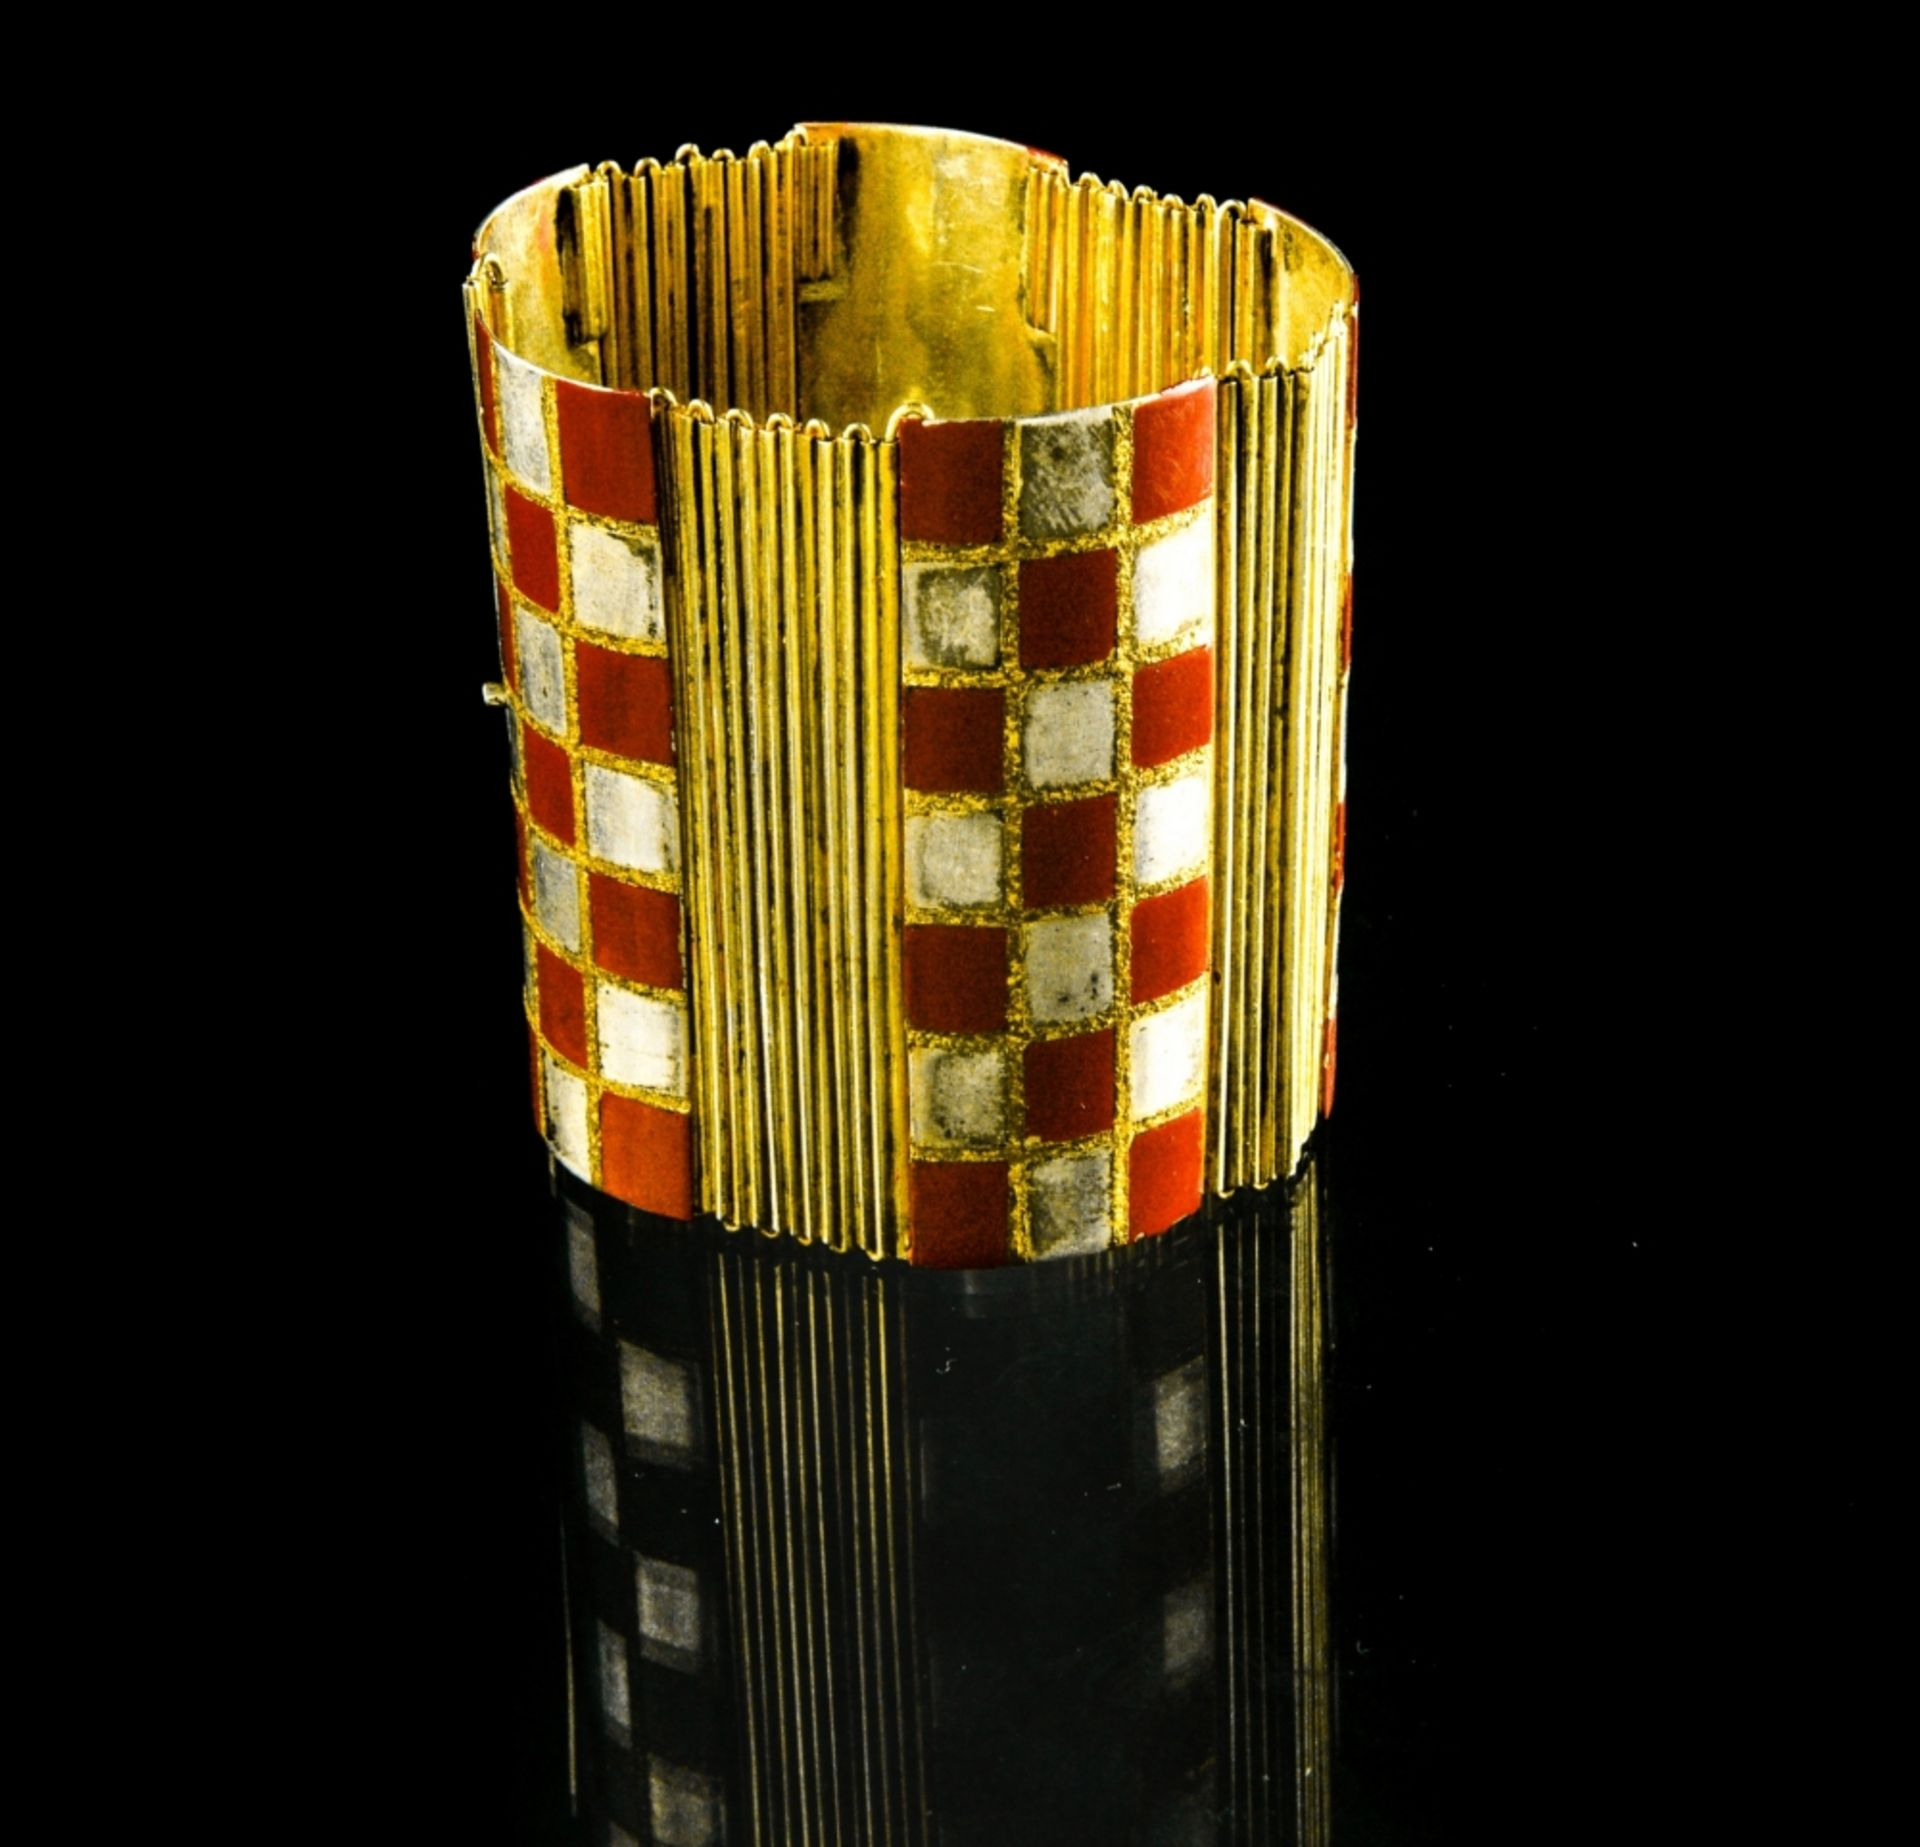 Jean DUNAND (1877 - 1942) Articulated bracelet, ca. 1922 Sterling silver, gilt metal, and red and